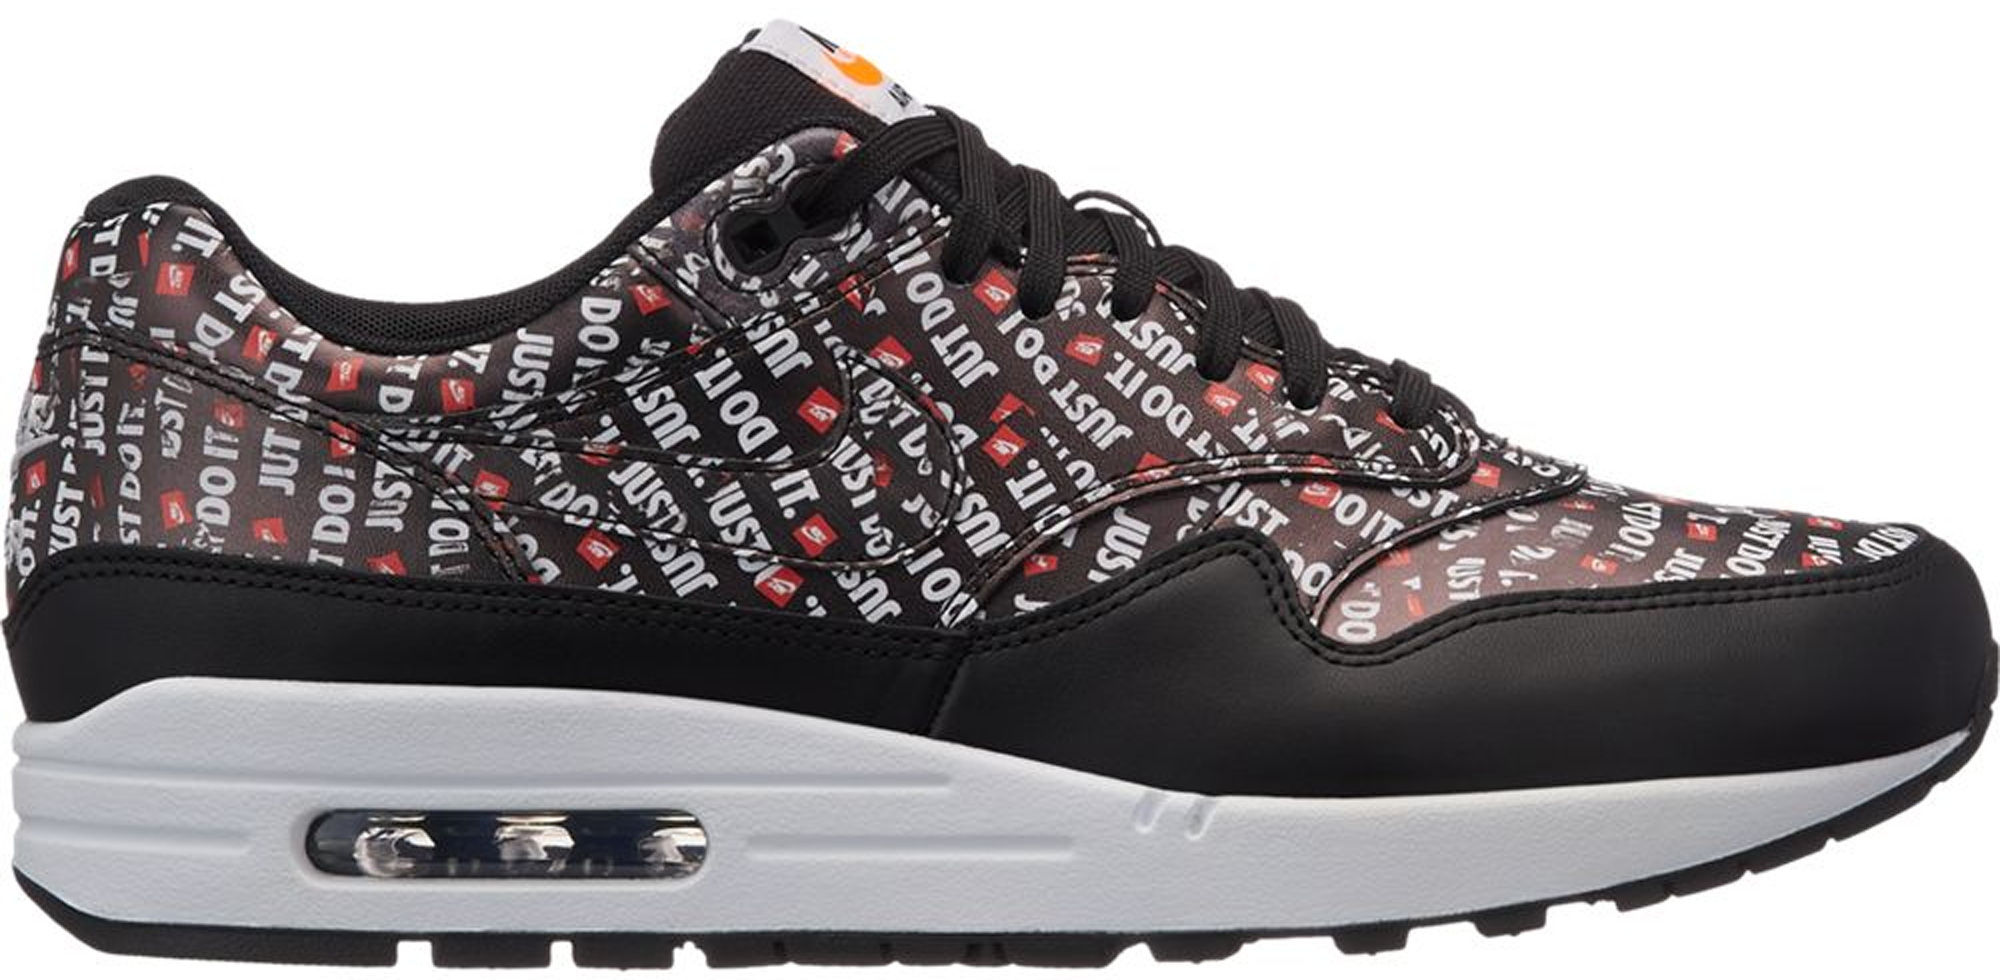 Nike Air Max 1 Just Do It Pack Black